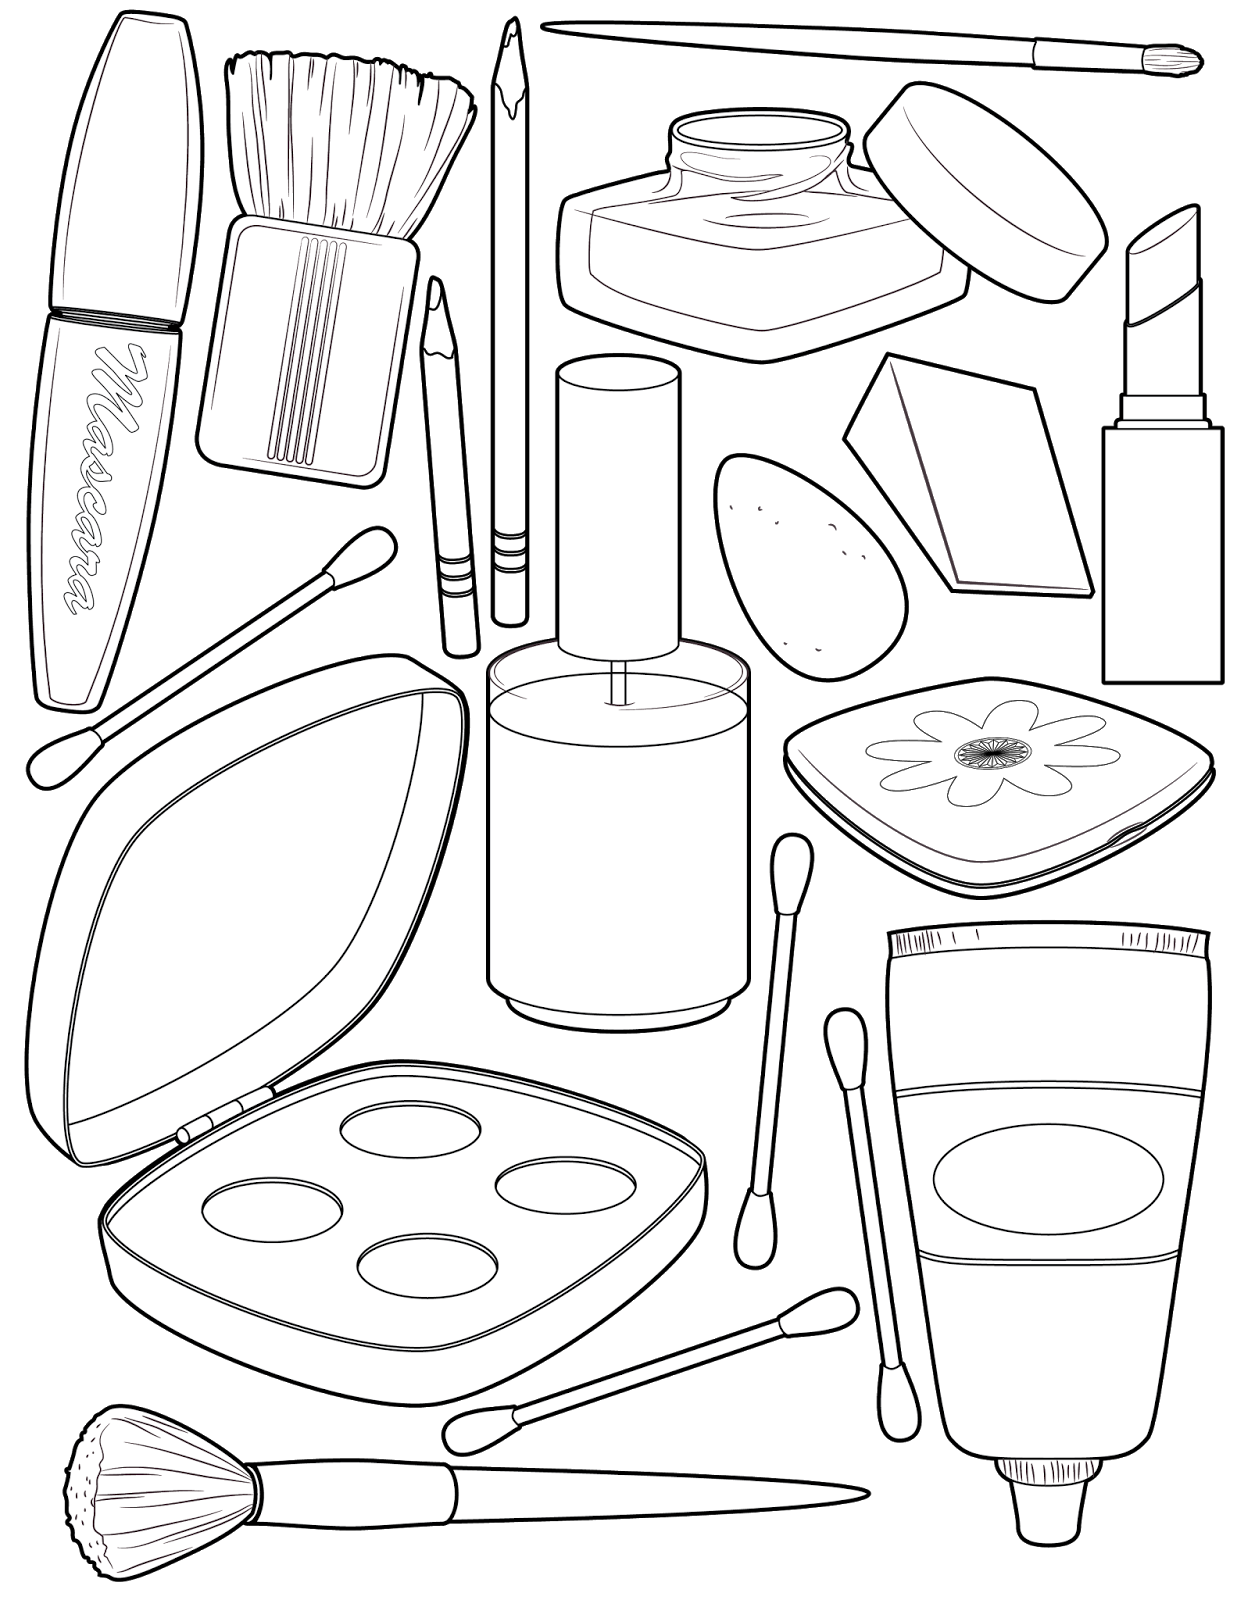 Lock clipart colouring. Makeup coloring page illustration